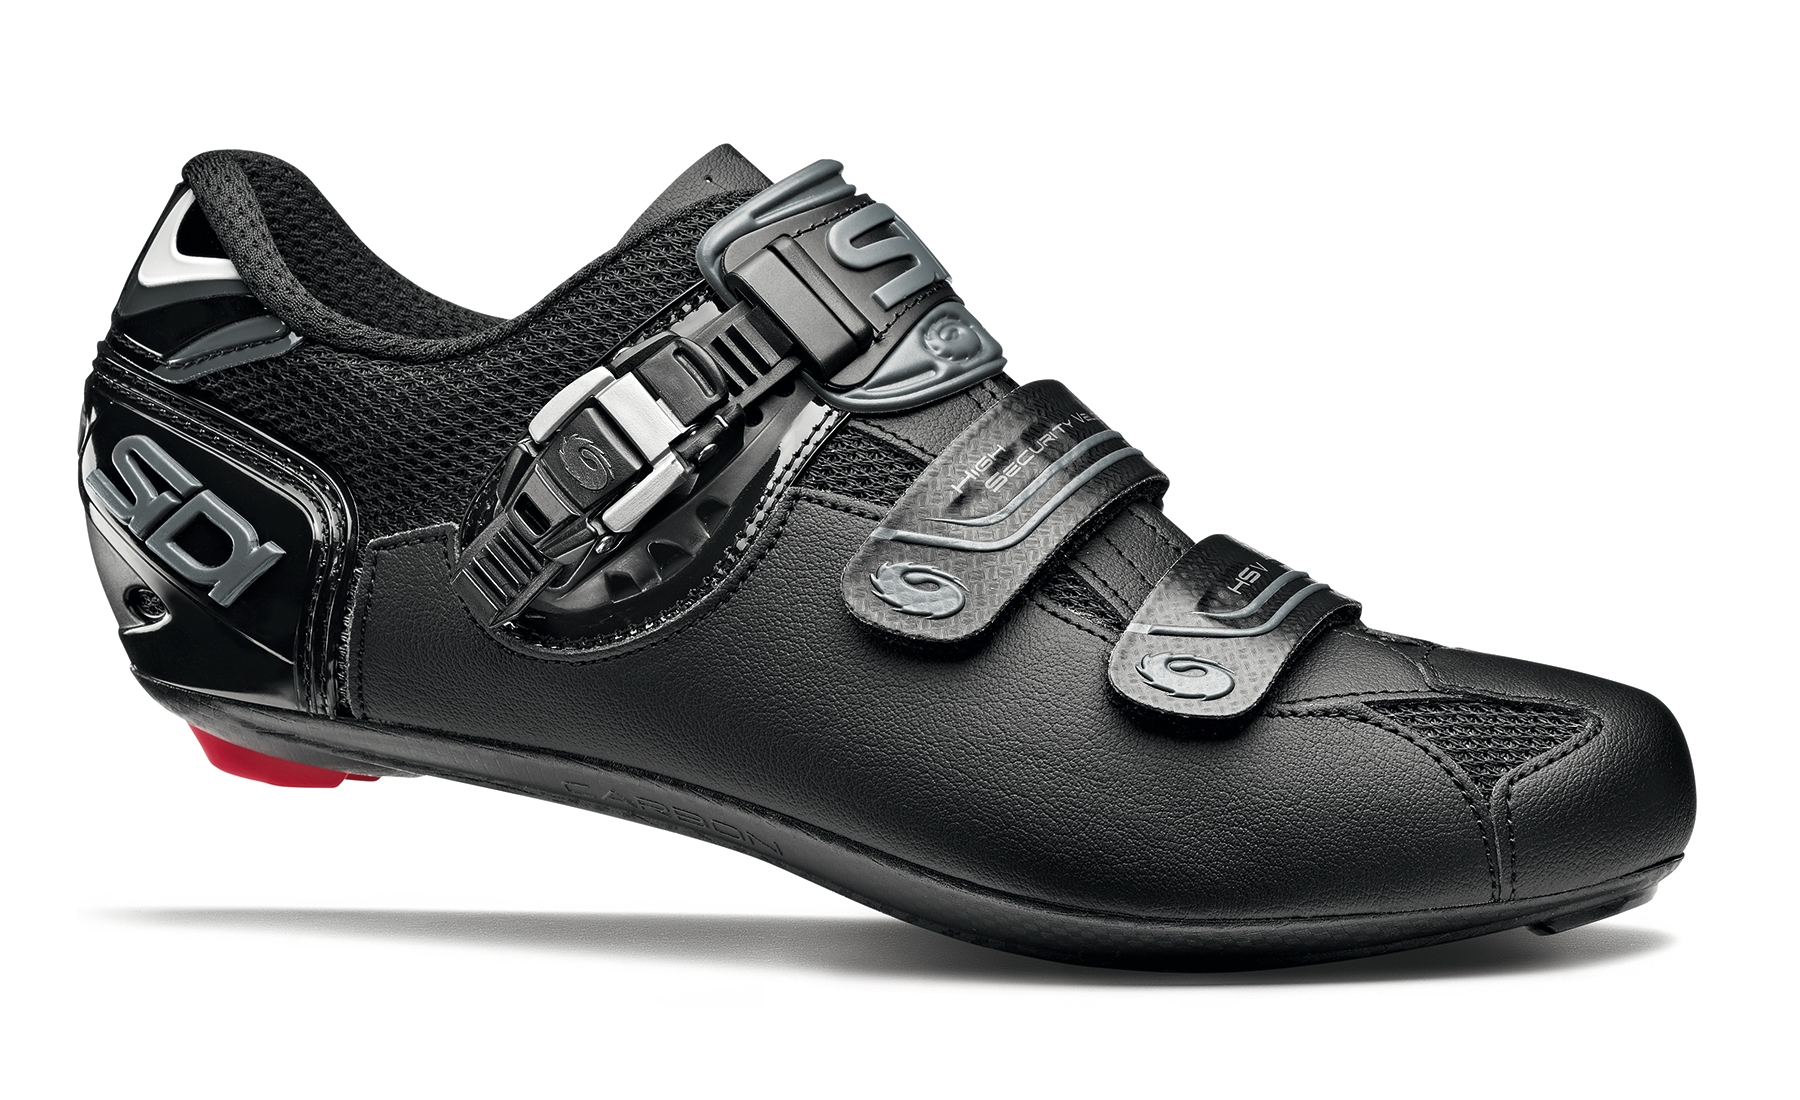 Sidi GENIUS 7 - shadow-black 46